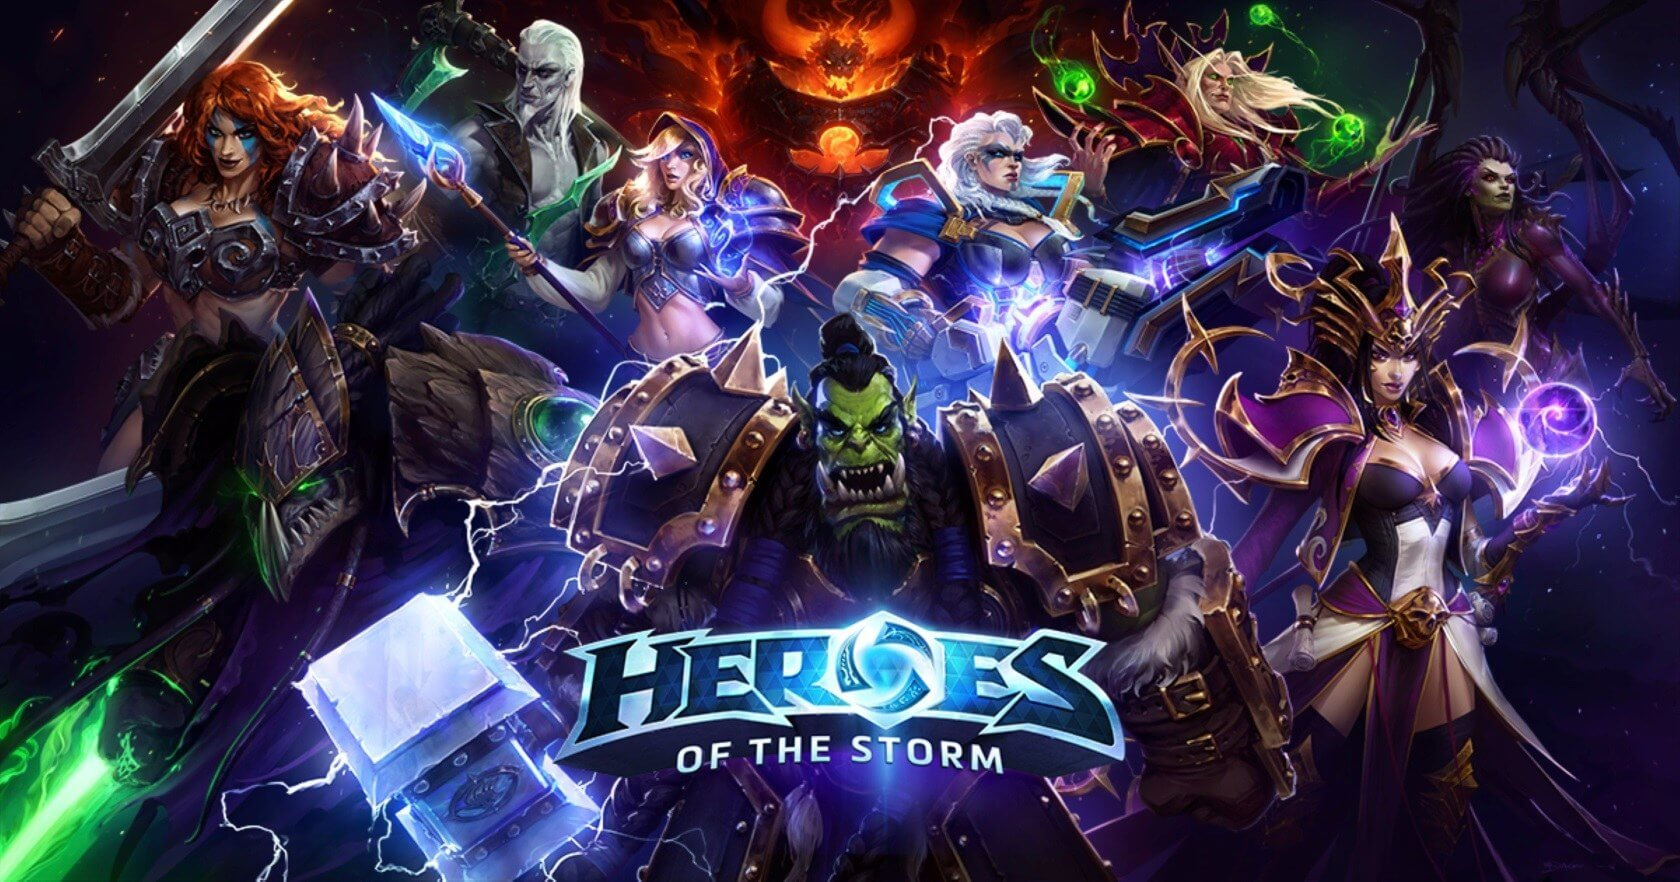 'Heroes of the Storm' Development Team Scaled Back By Blizzard